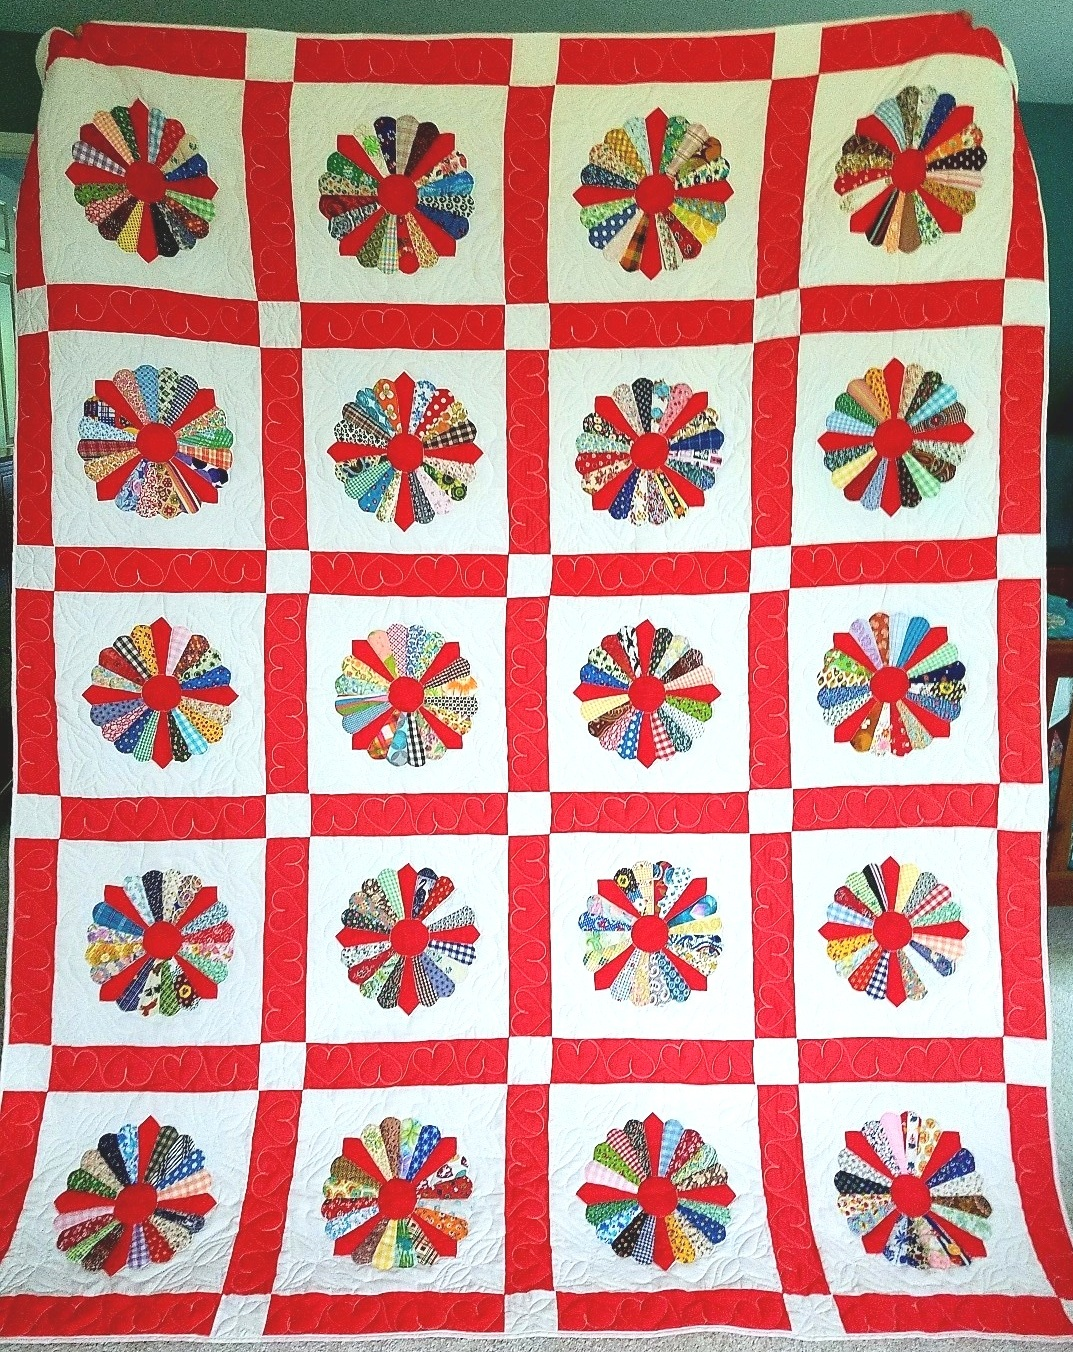 Raffle quilt for Autumn Comforts quilt show in 1982.